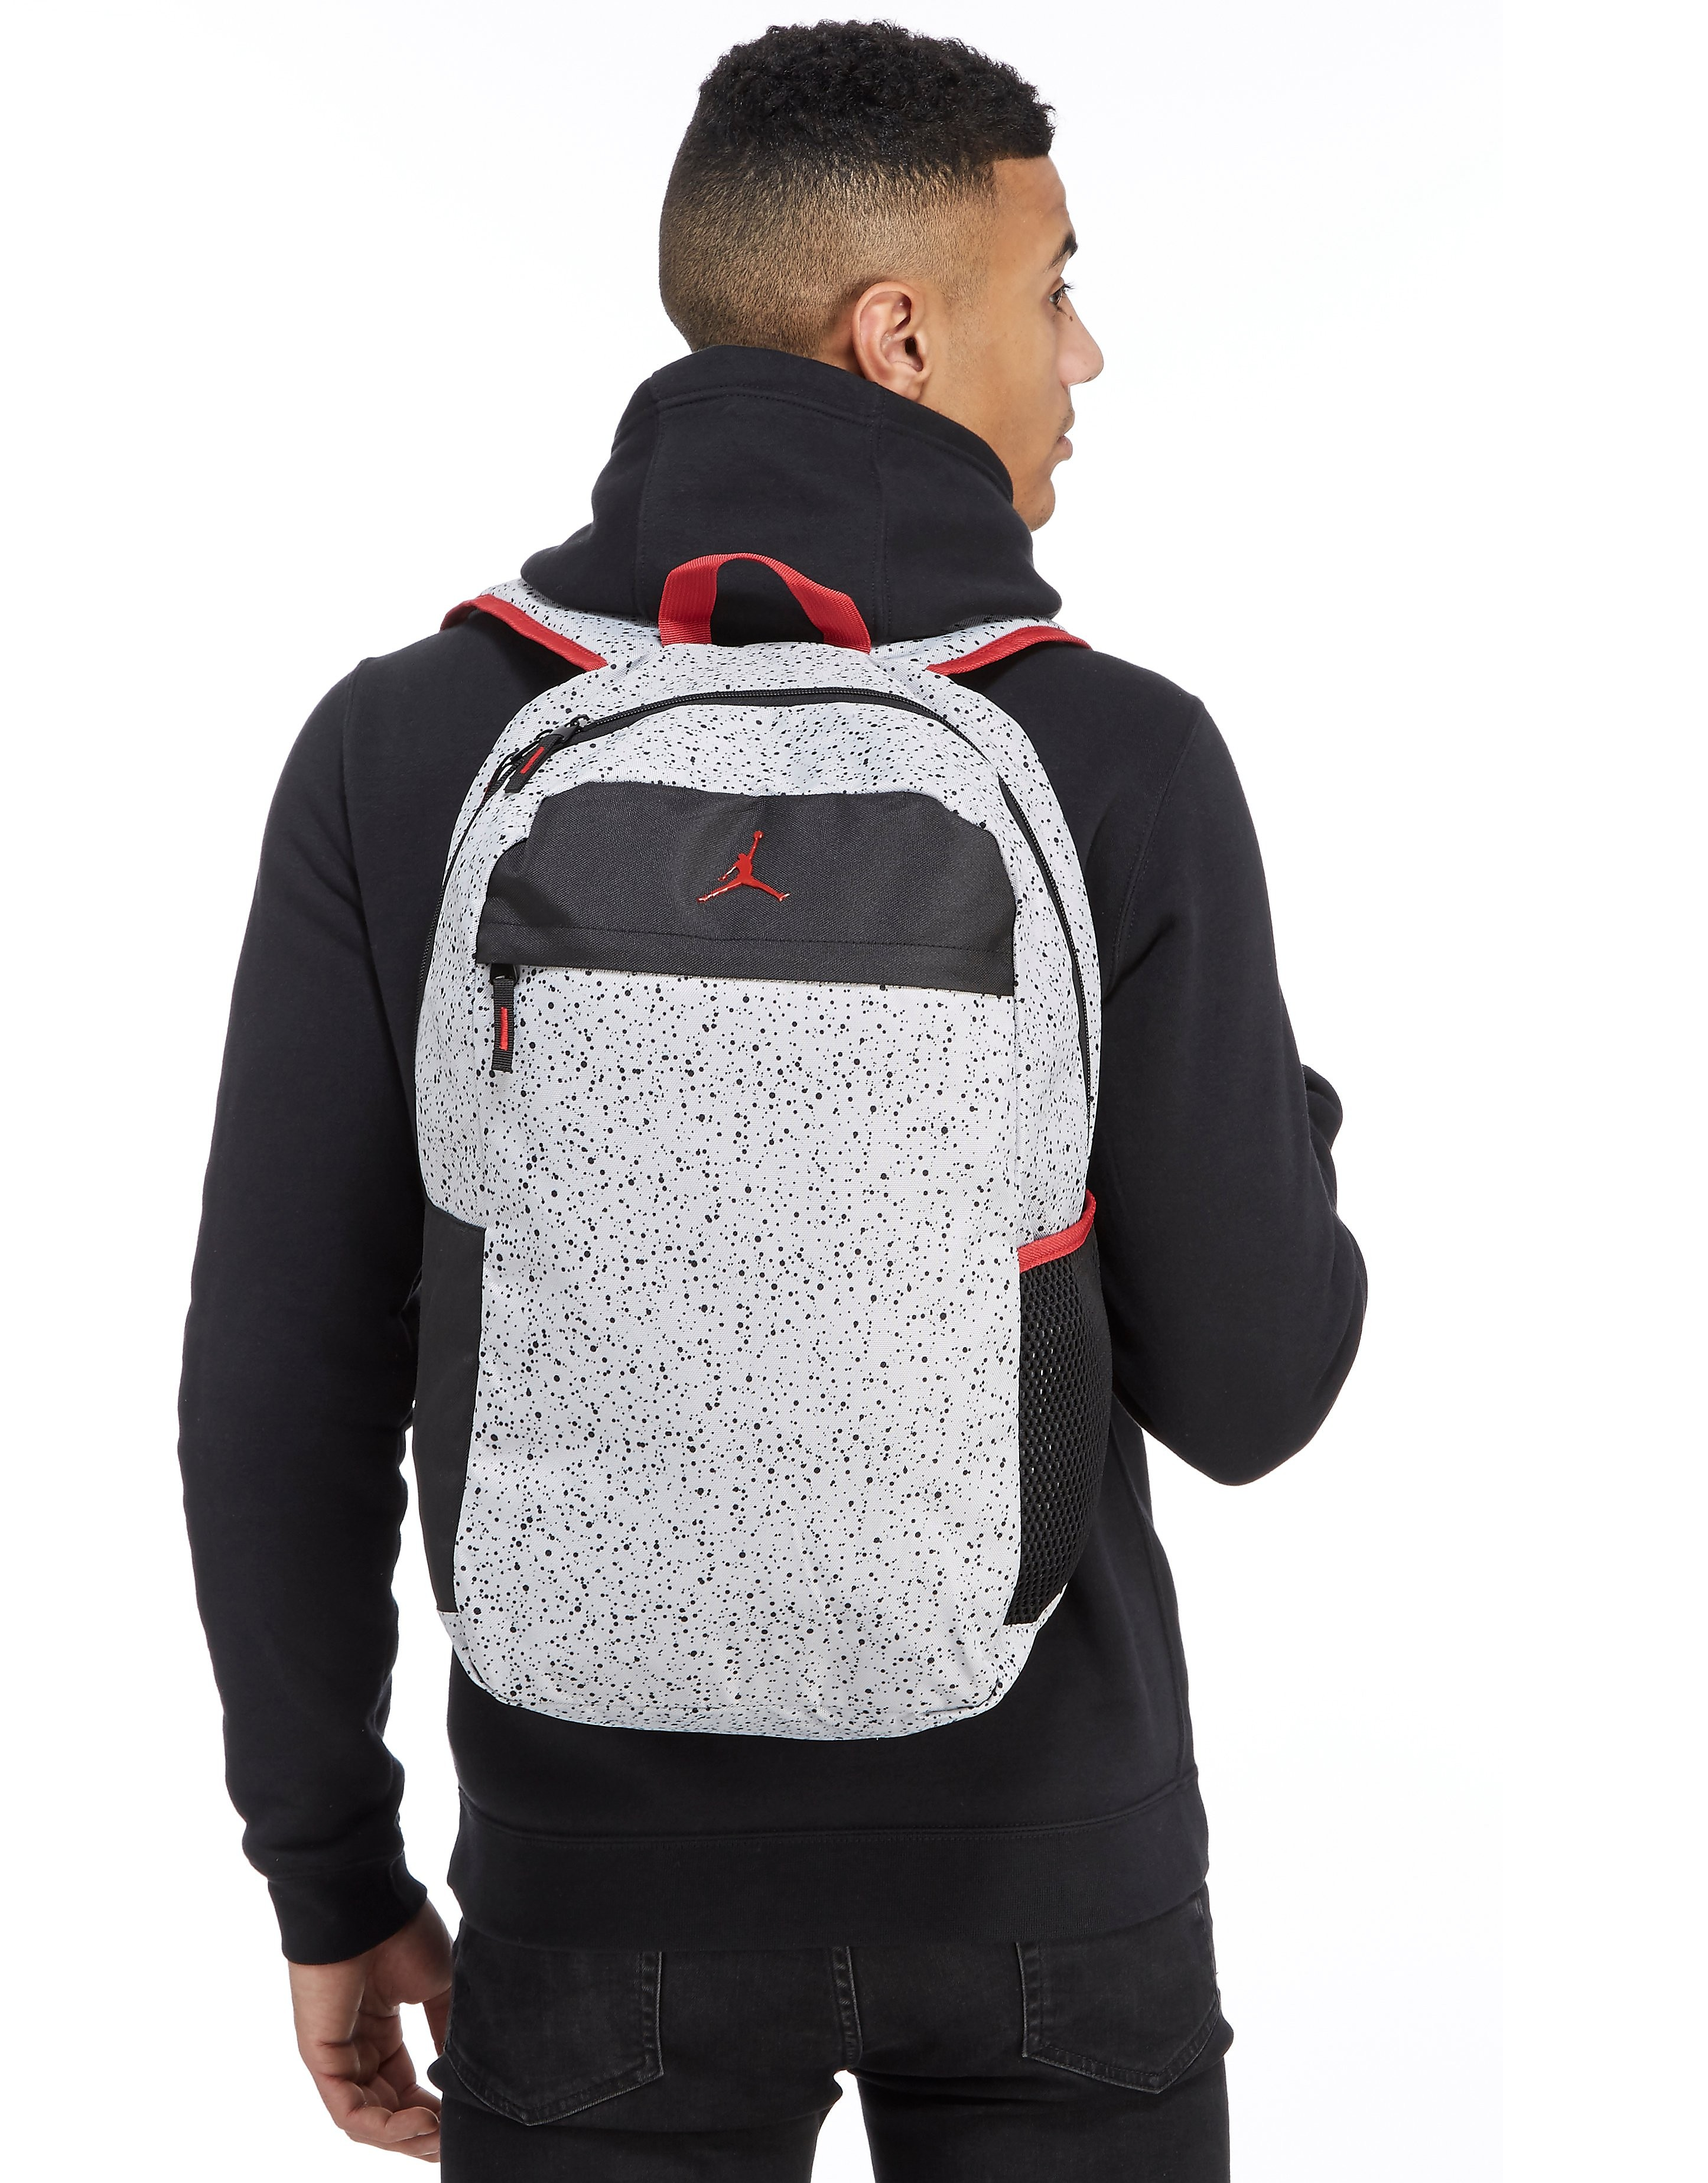 Jordan Daybreaker Backpack